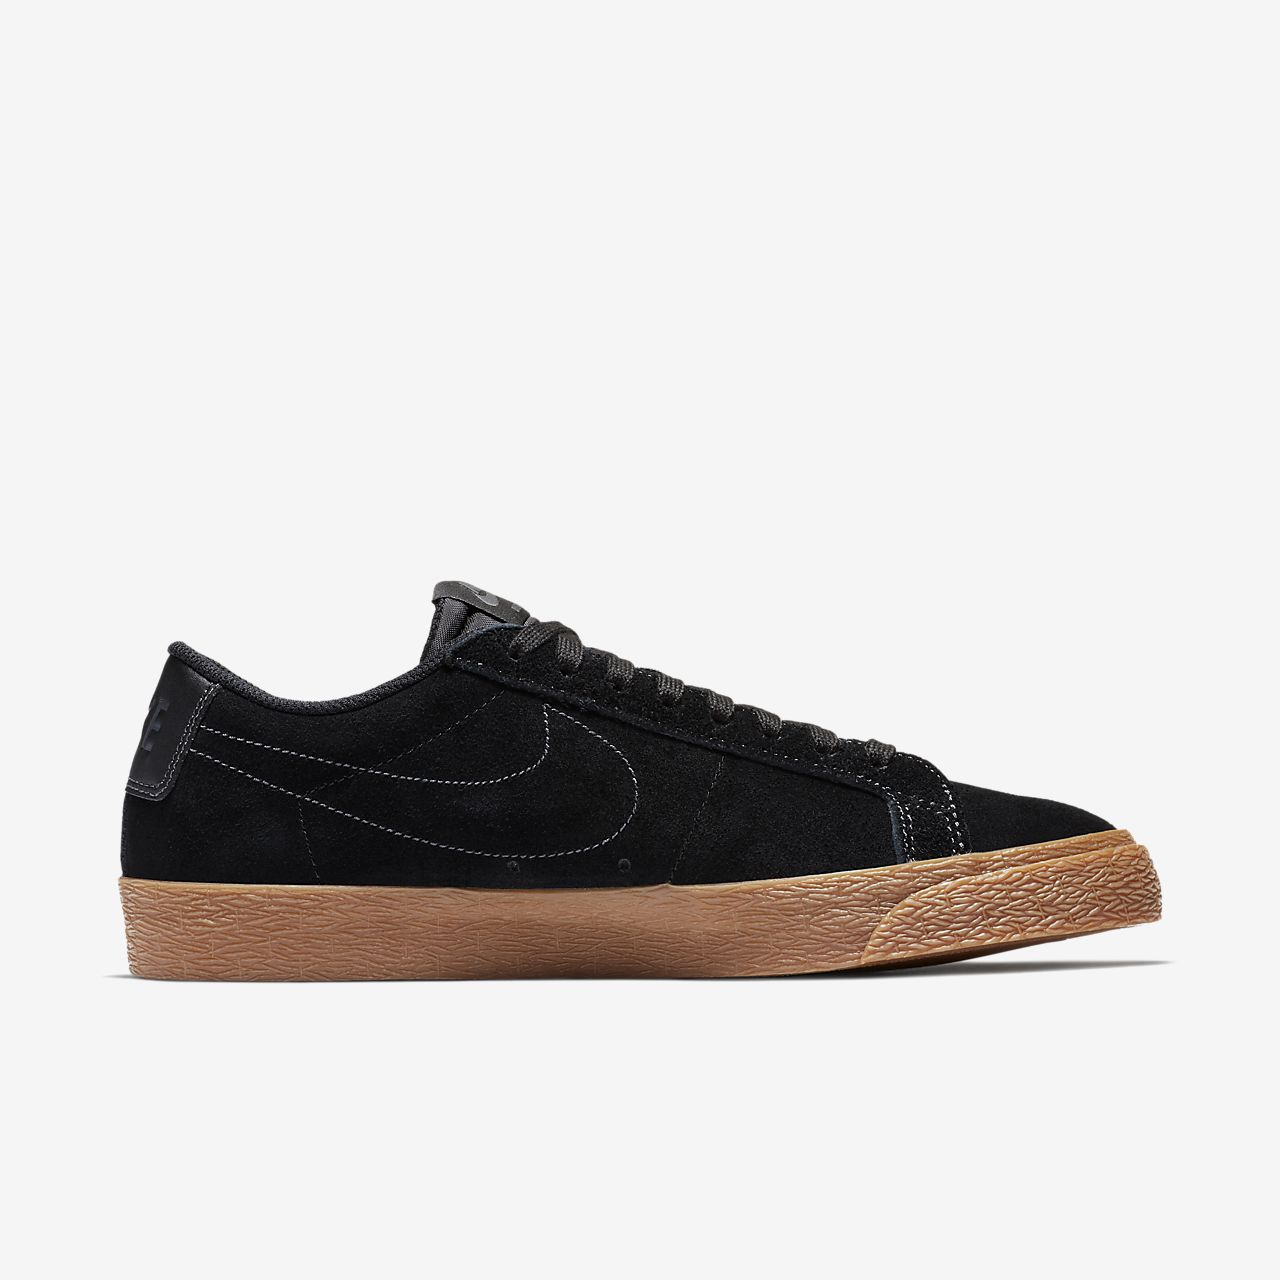 114541d316b Nike SB Blazer Zoom Low Men s Skateboarding Shoe. Nike GB